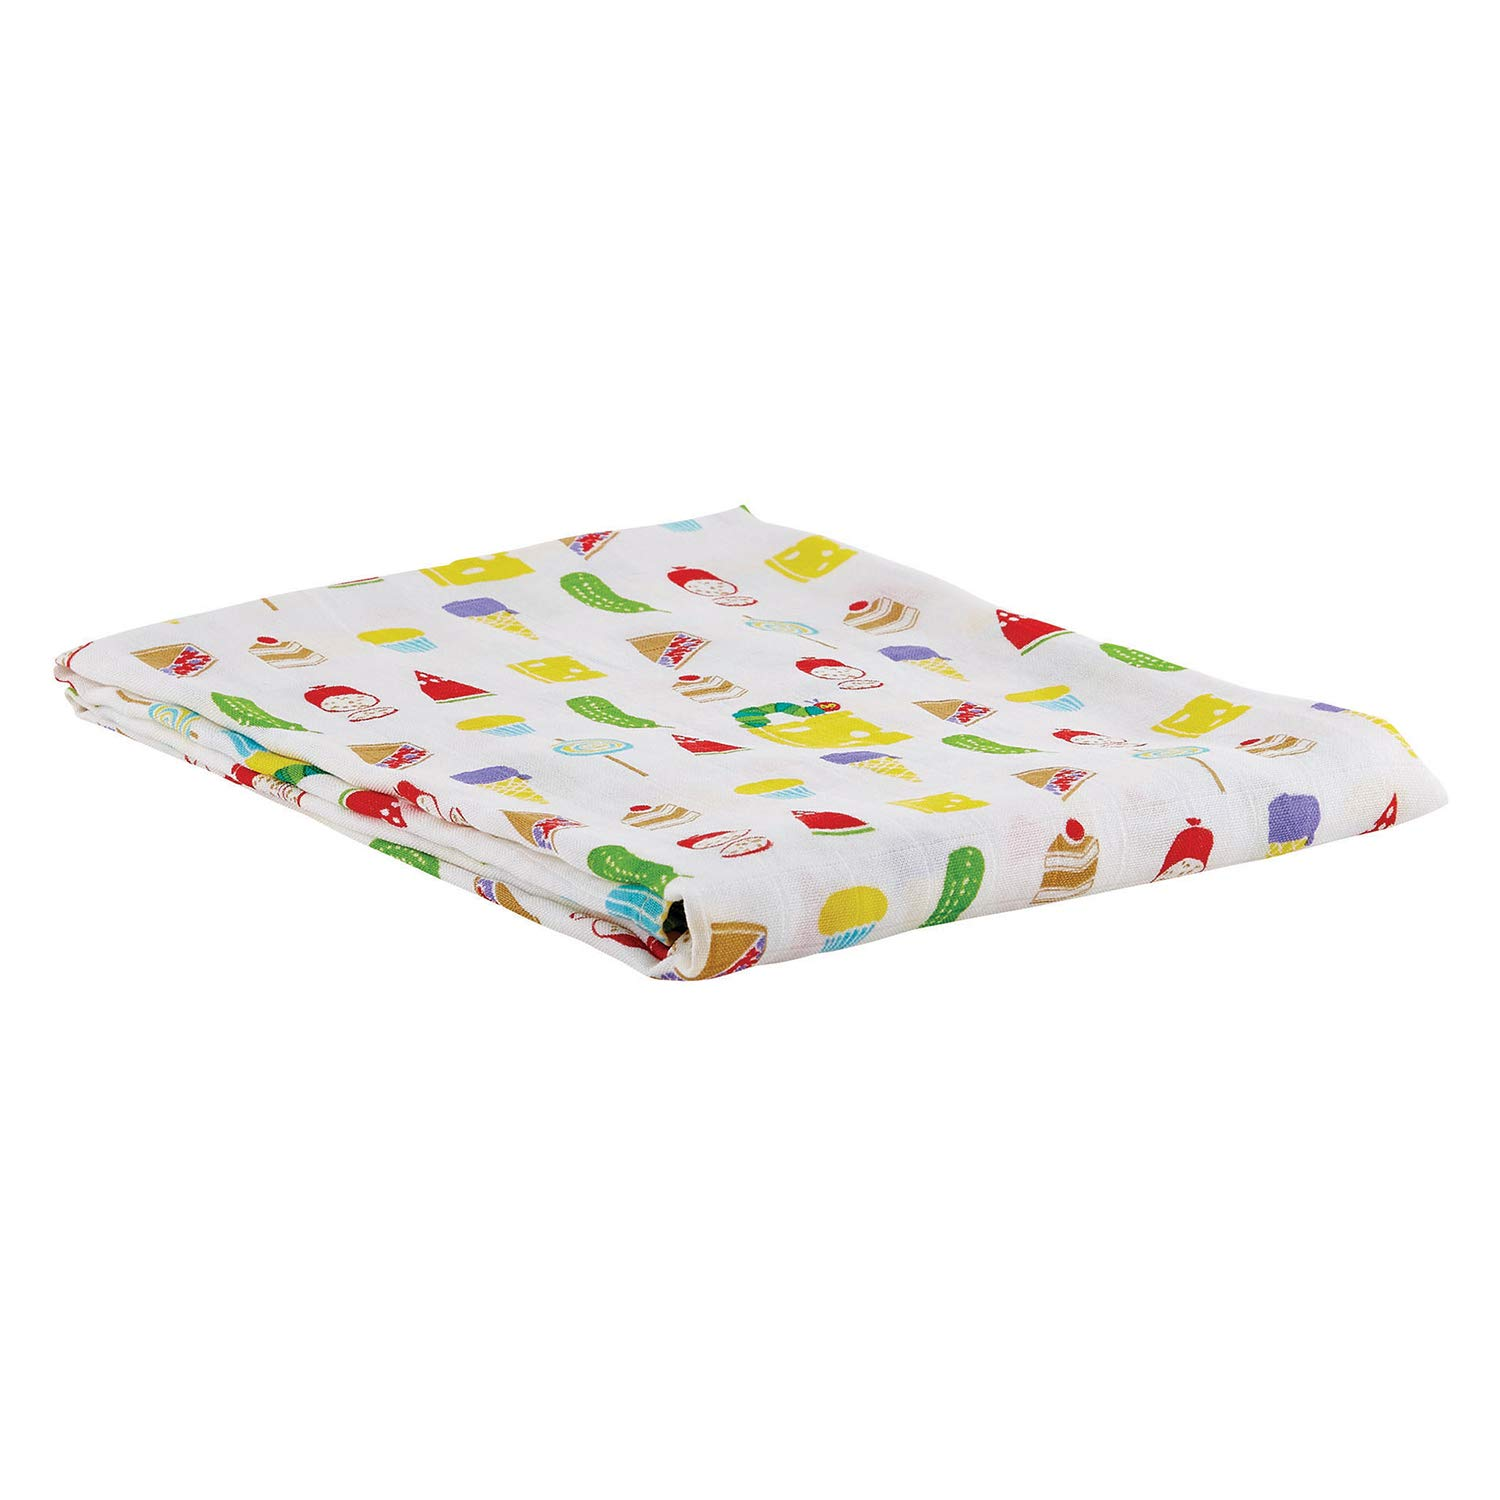 "Stephan Baby Cotton + Viscose Swaddle Blanket, 45"" x 45"", The Very Hungry Caterpillar Junk Food"